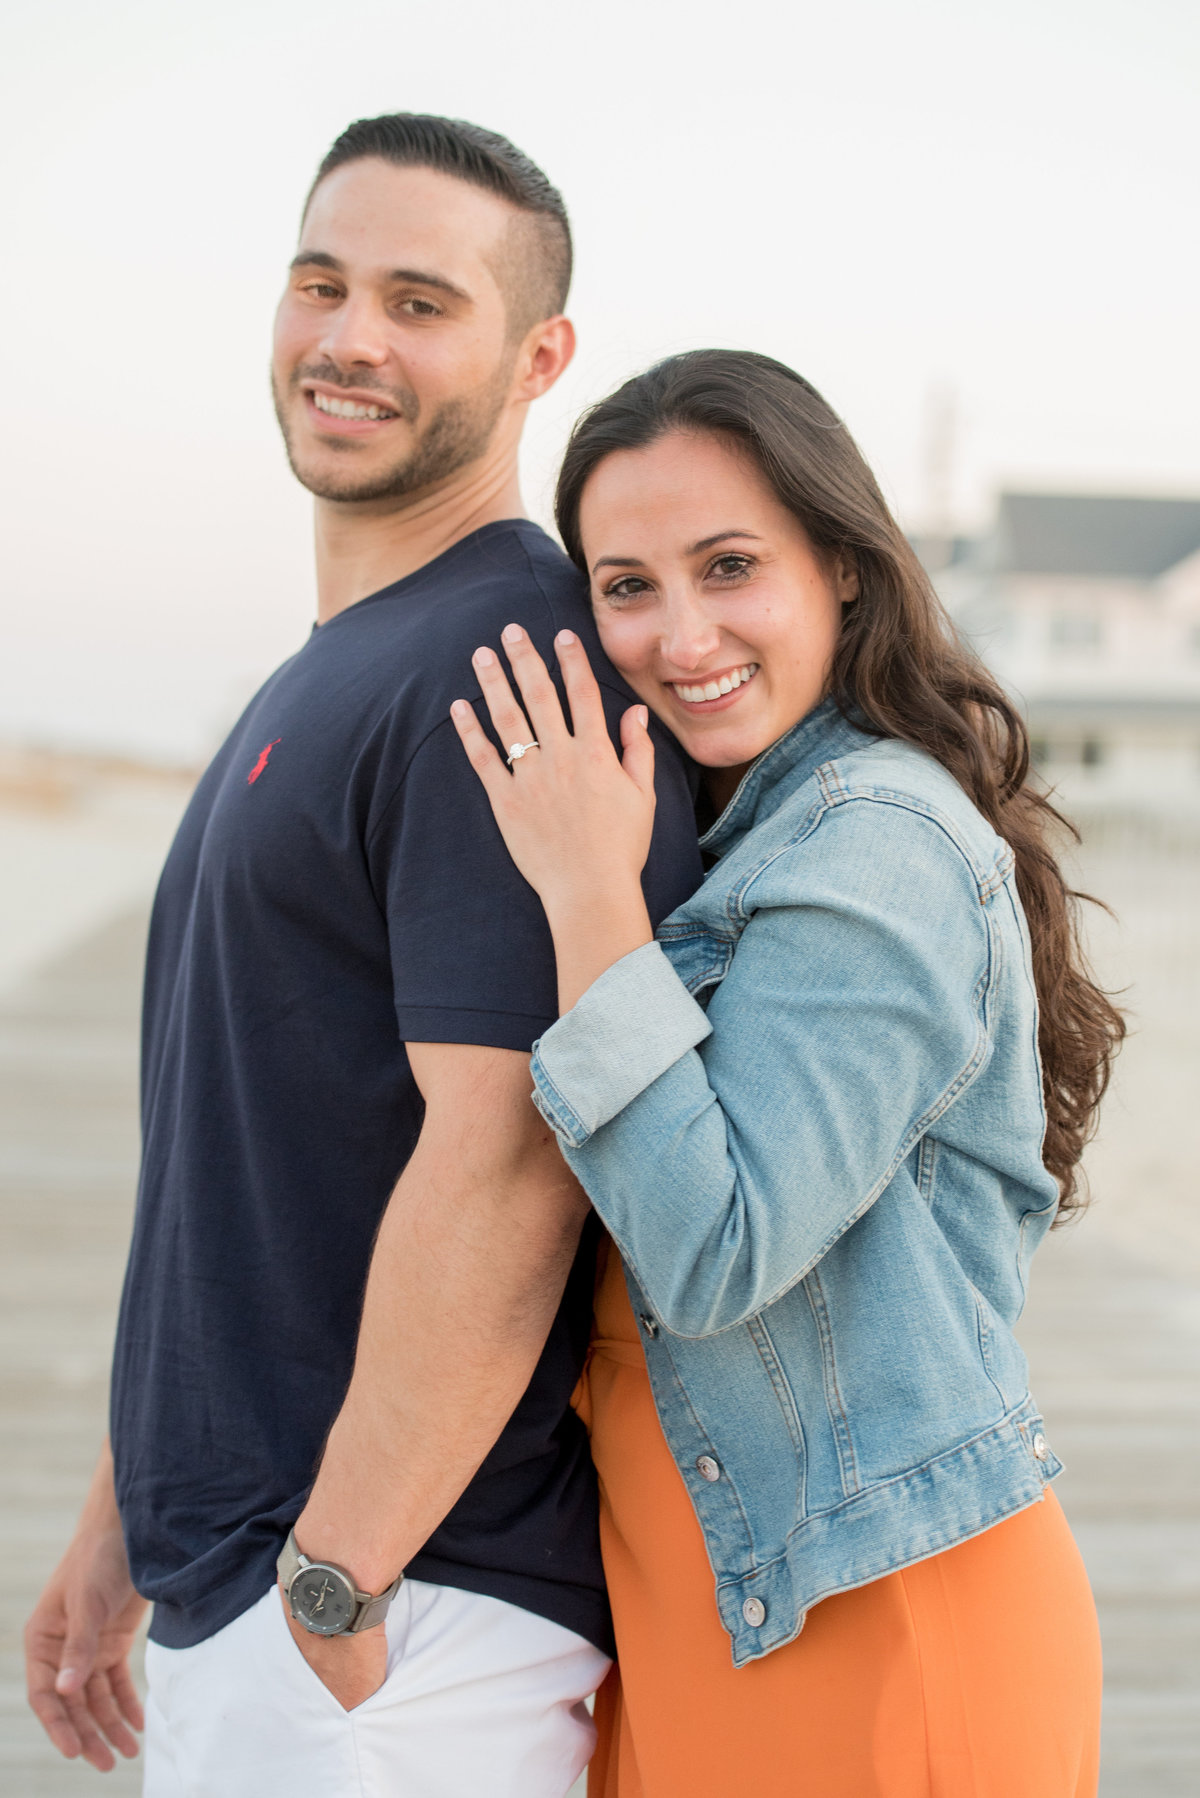 lisa-albino-lavallette-beach-surprise-proposal-imagery-by-marianne-2019-98